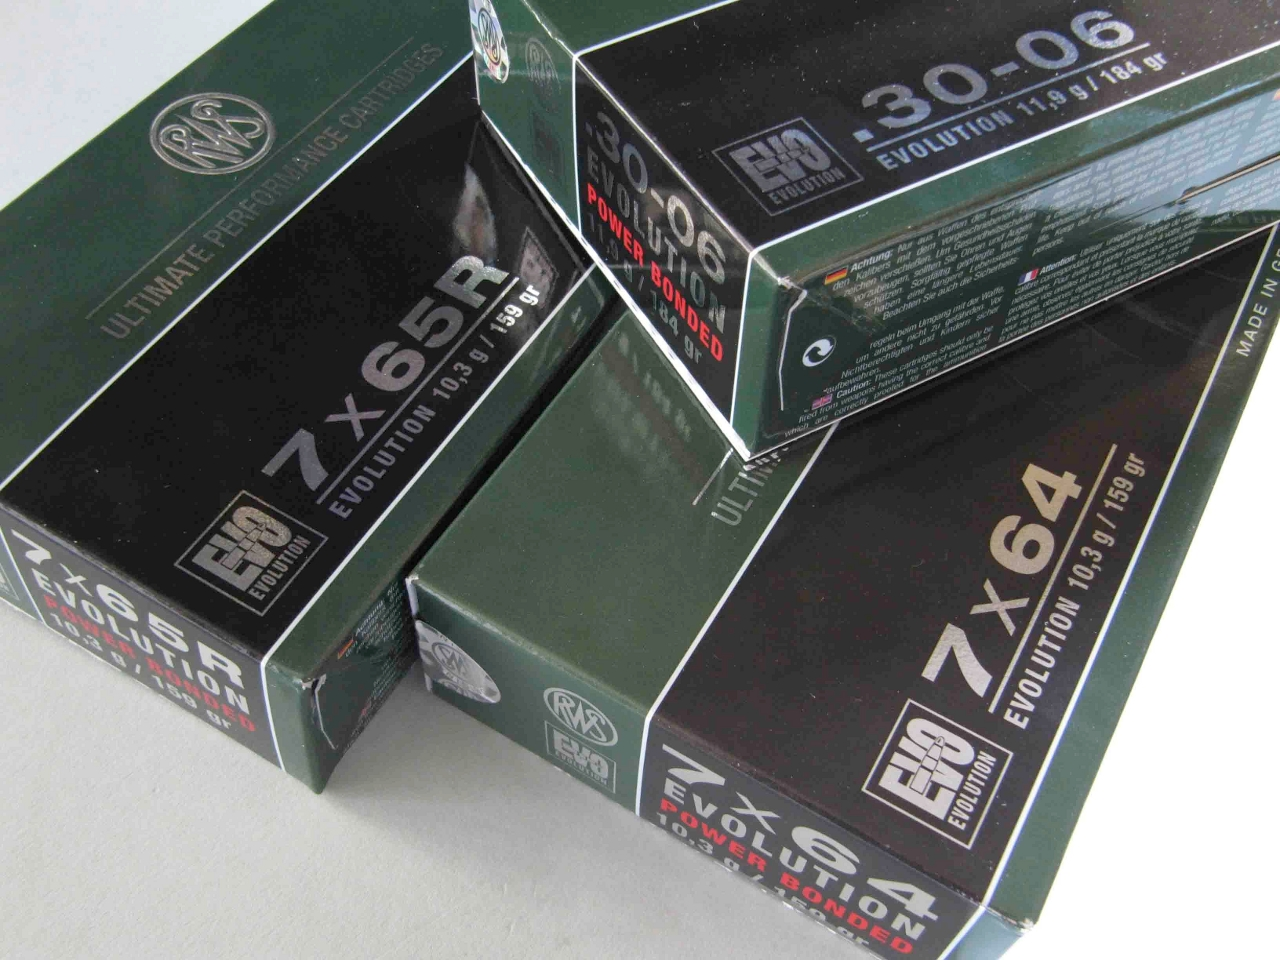 Ammunition for the 7x64 Brenneke and the 7x65 are also available from RWS.